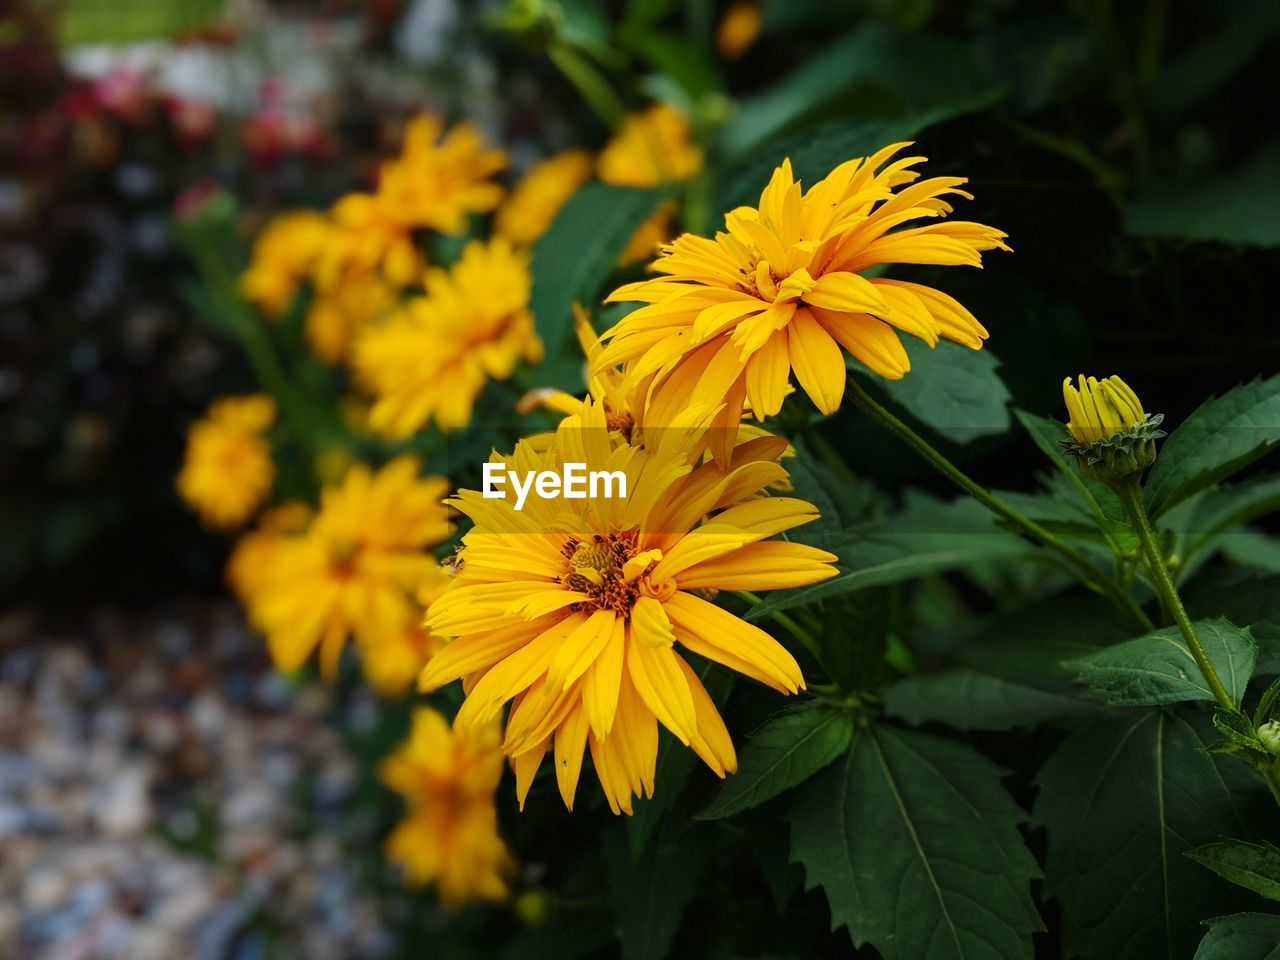 flowering plant, flower, fragility, vulnerability, freshness, beauty in nature, petal, plant, yellow, growth, flower head, inflorescence, close-up, focus on foreground, nature, day, plant part, leaf, outdoors, no people, pollen, gazania